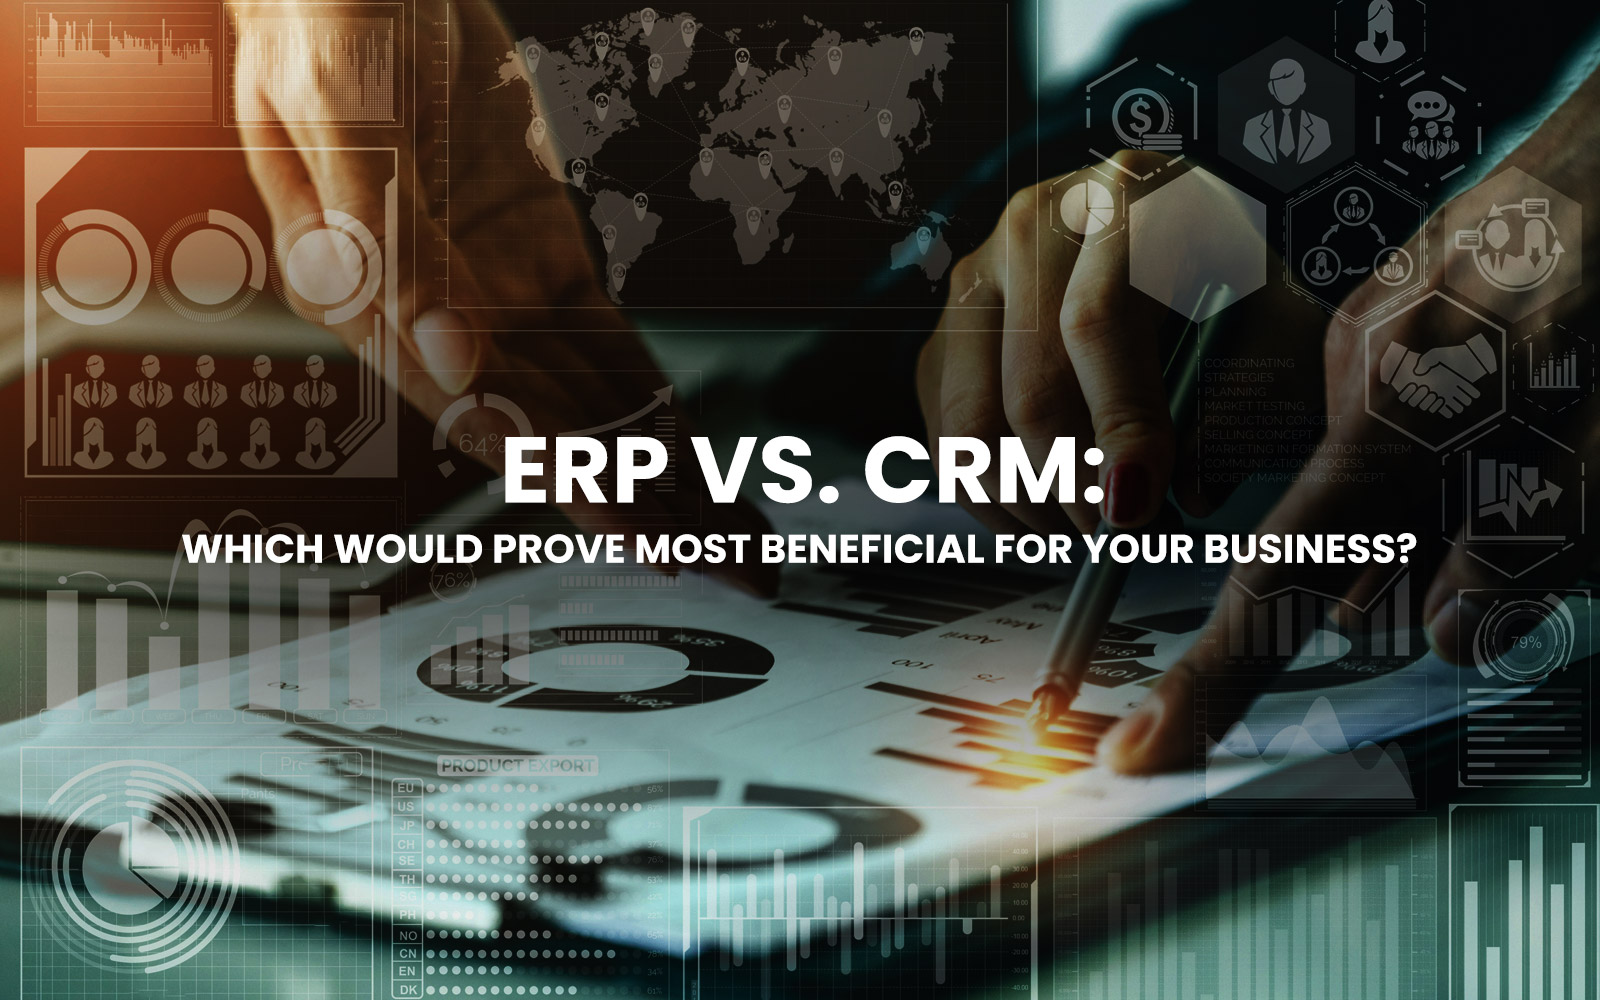 ERP vs. CRM: Which Would Prove most Beneficial for Your Business?